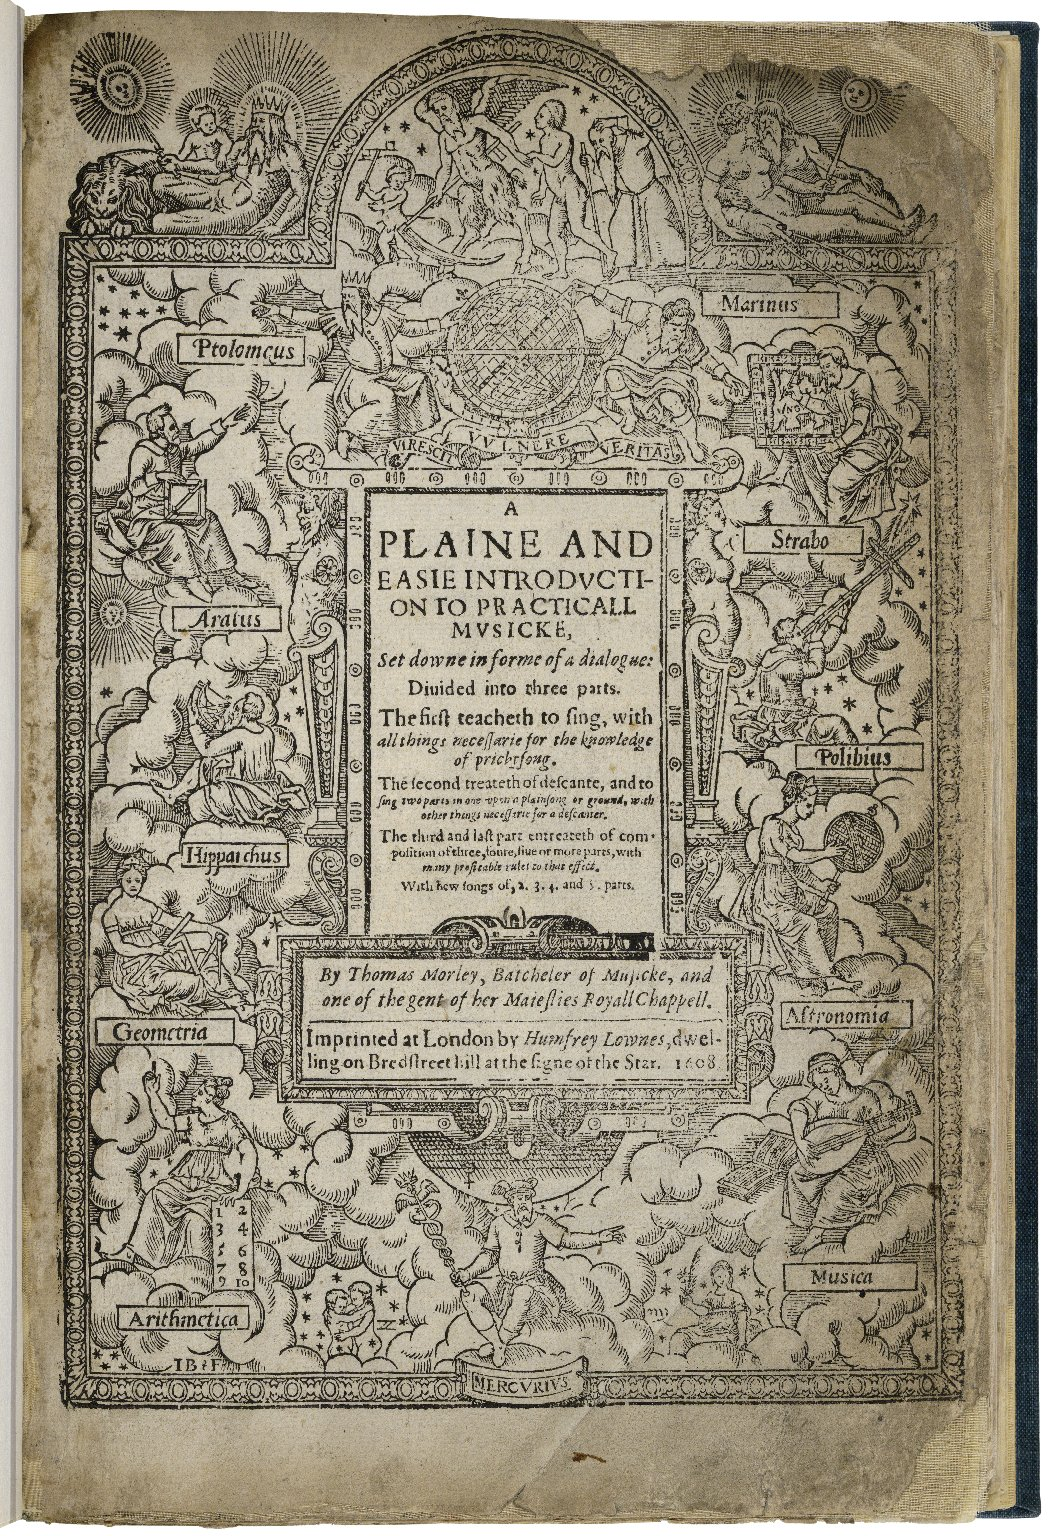 A plaine and easie introduction to practicall musicke, set downe in forme of a dialogue: diuided into three parts. The first teacheth to sing, with all things necessarie for the knowledge of pricktsong. The second treateth of descante, and to sing two par